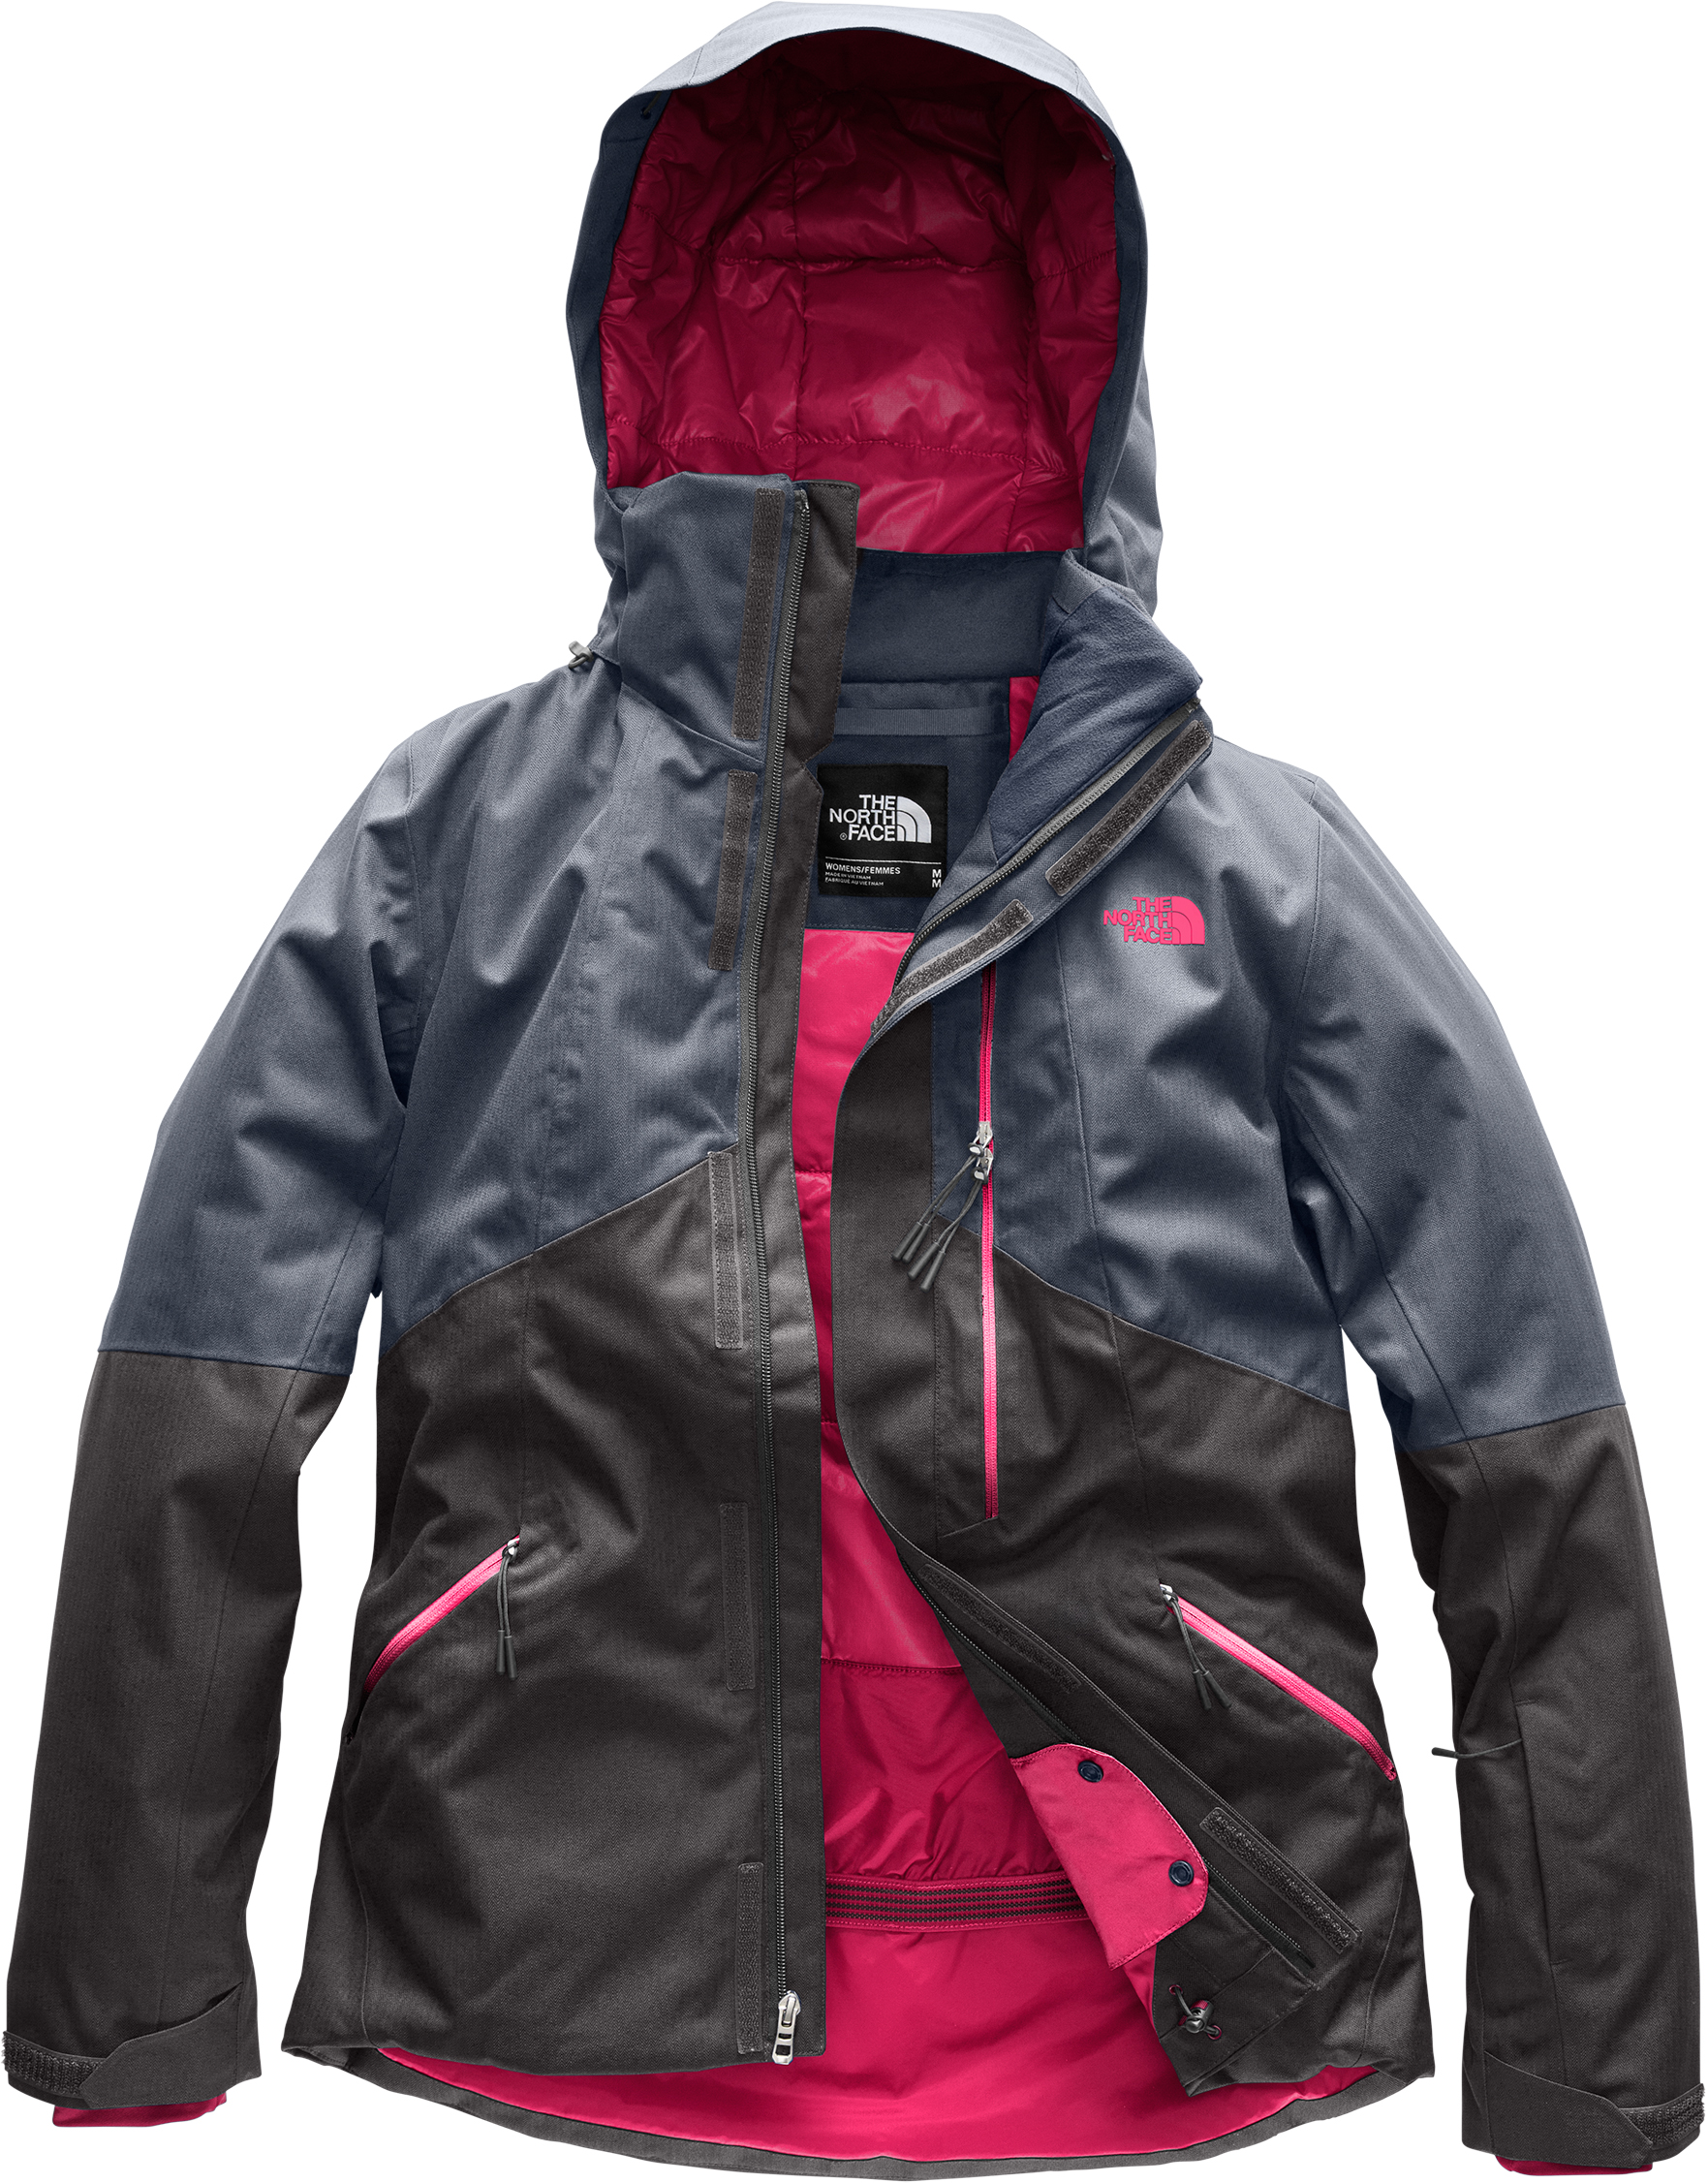 e8f537d00 The North Face Gatekeeper Jacket - Women's